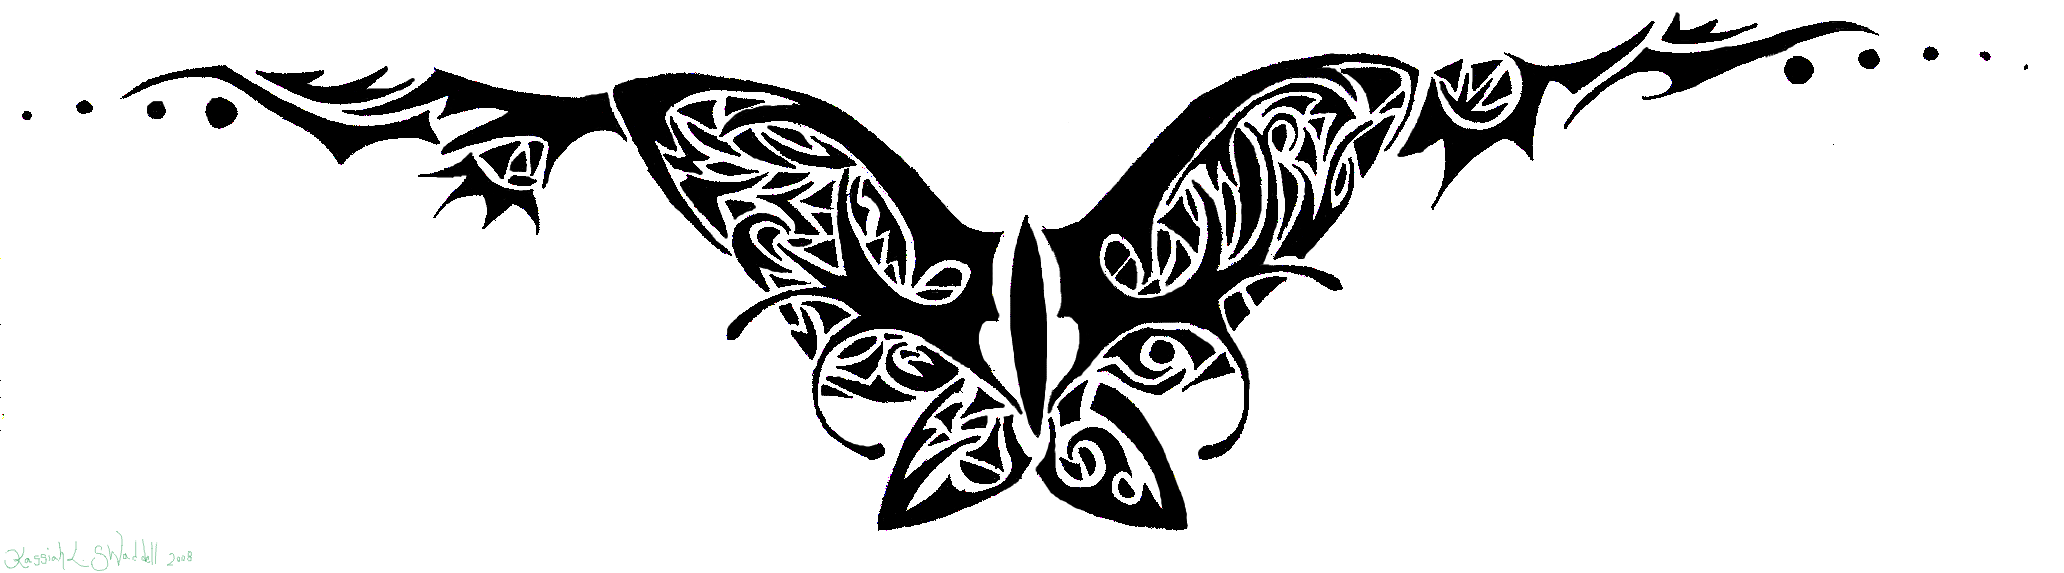 tramp stamp tattoo designs butterfly tramp stamp by ryvienna on deviantart. Black Bedroom Furniture Sets. Home Design Ideas